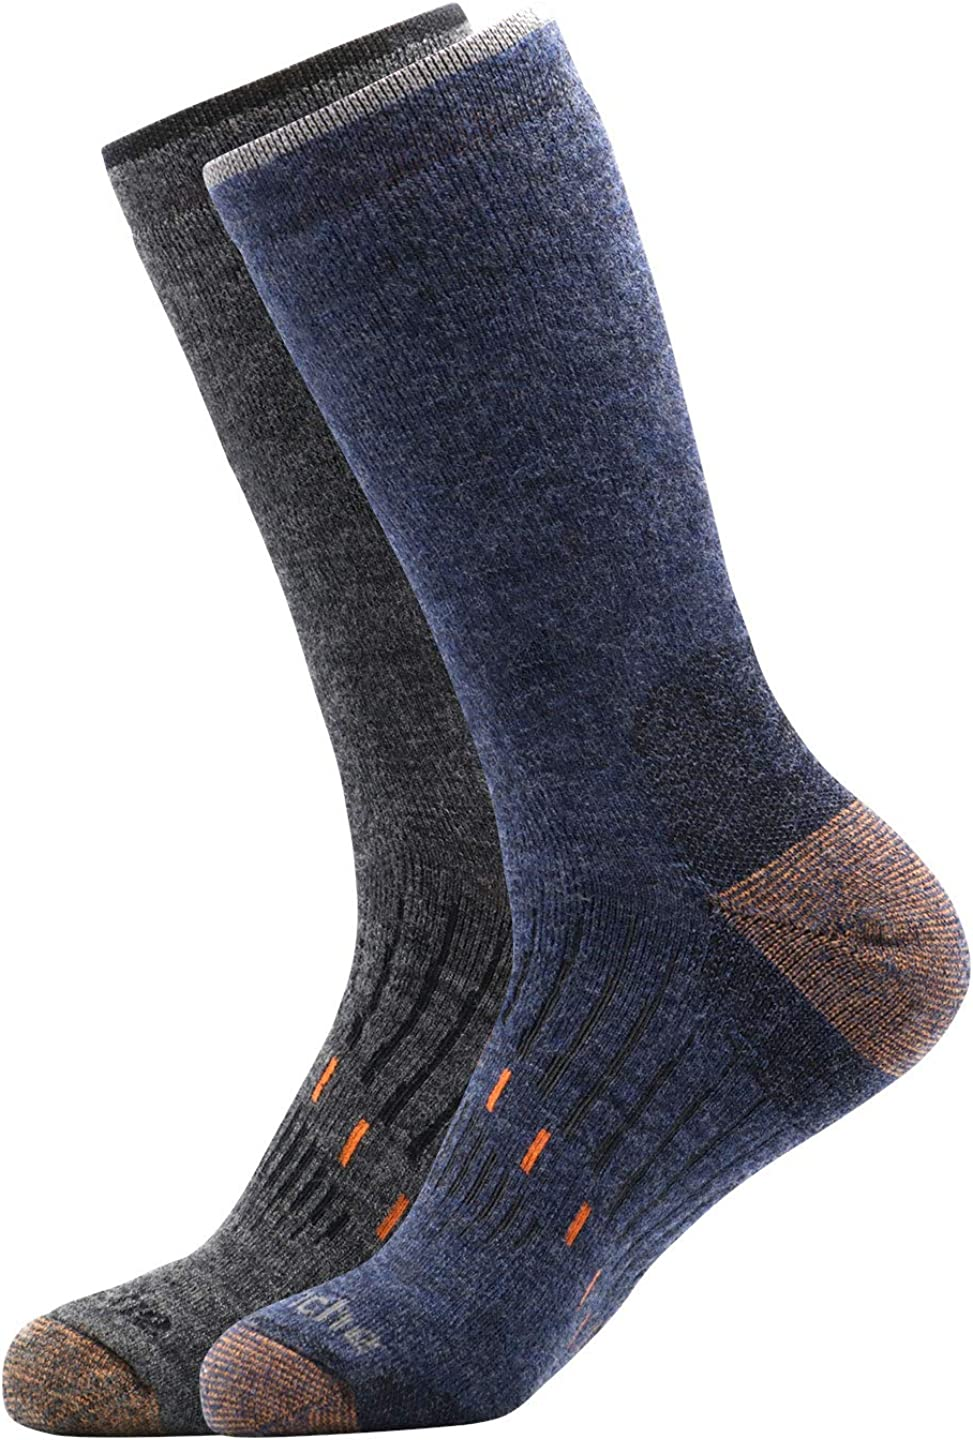 Avalanche Men's Odor Resistant Copper Wool Blend Crew Socks With Arch Support 2-Pack